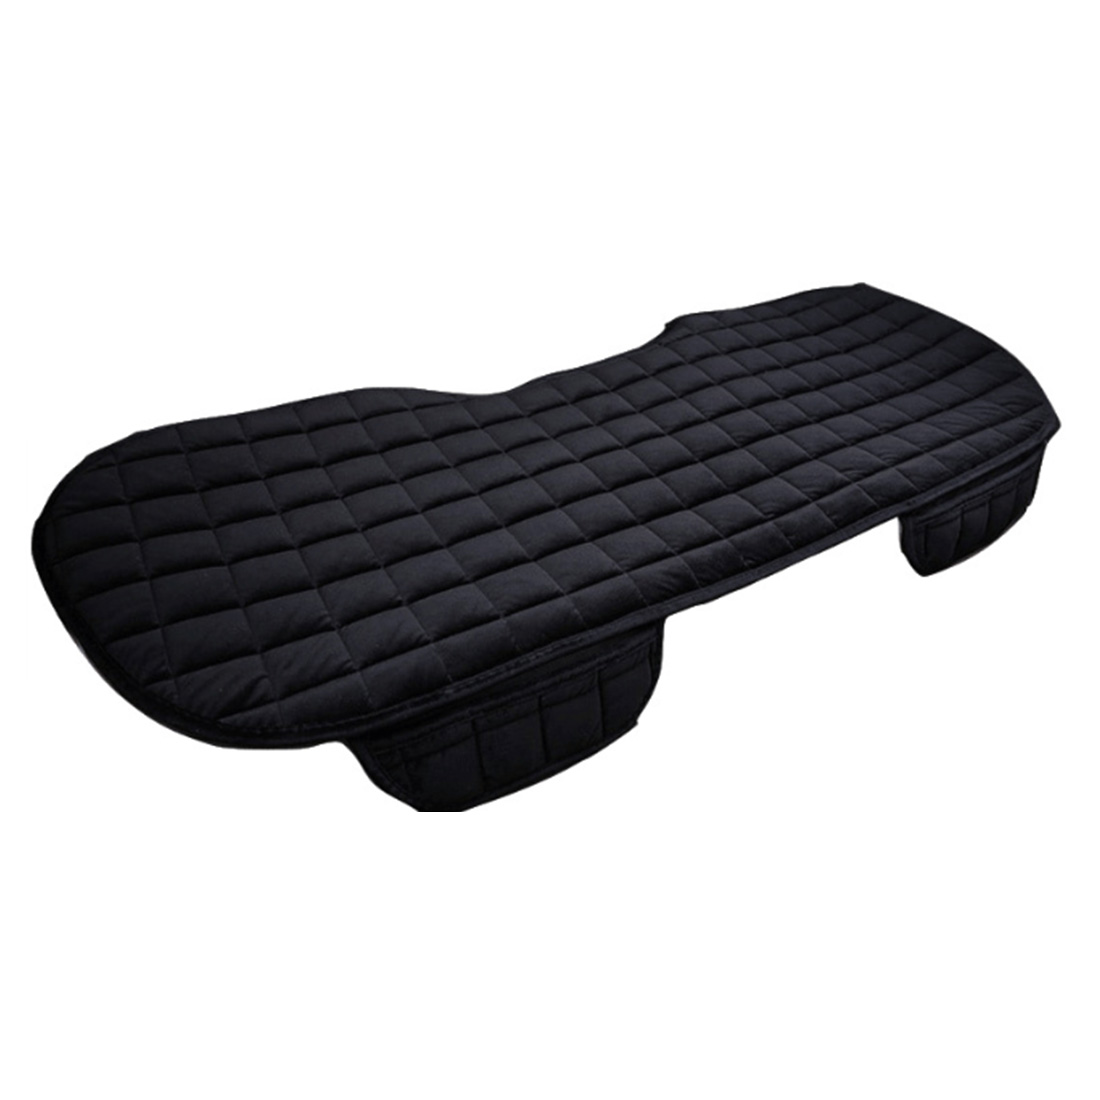 Image 4 - Car Front Rear Universal Seat Cover Winter Warm Black Seat Cushion Anti Slip Rear Back Chair Seat Pad For Vehicle Auto Protector-in Automobiles Seat Covers from Automobiles & Motorcycles